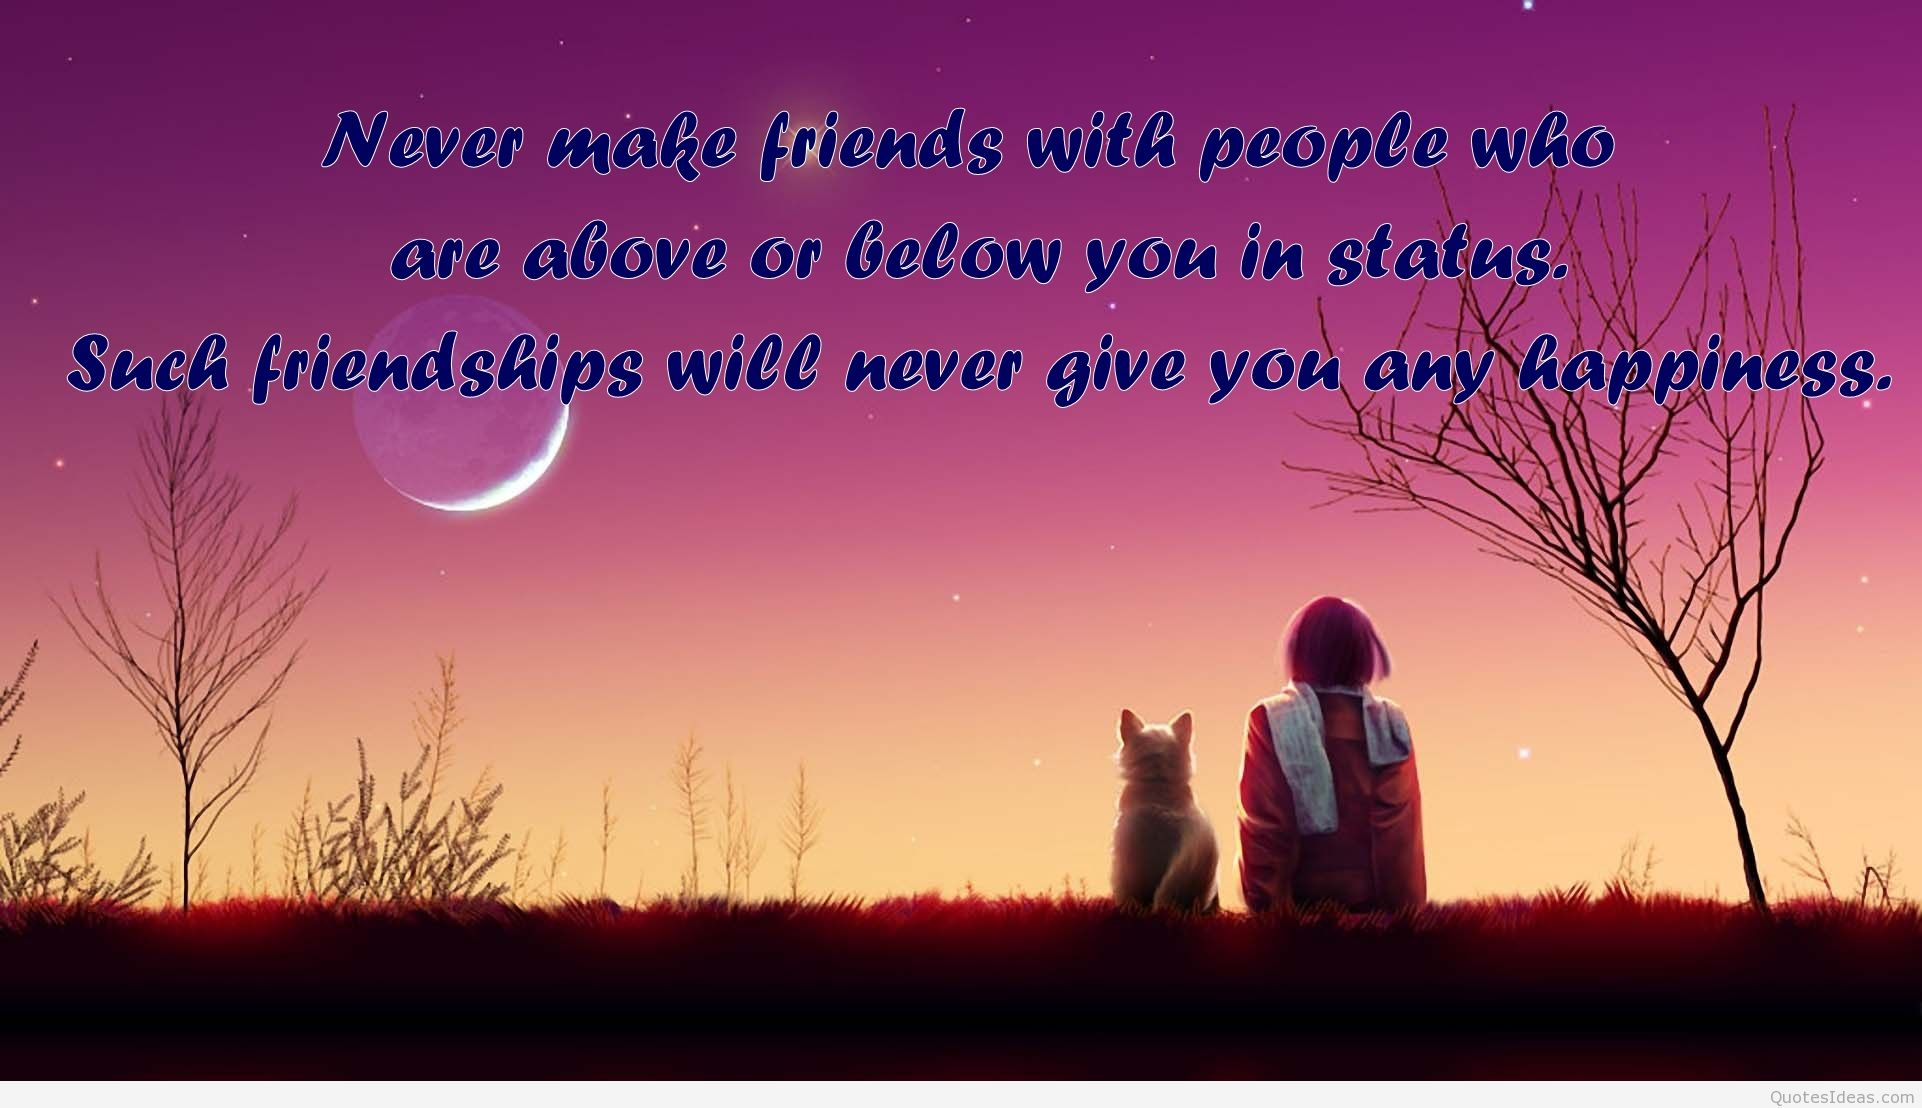 HD Best Friends Forever Backgrounds 1922x1108